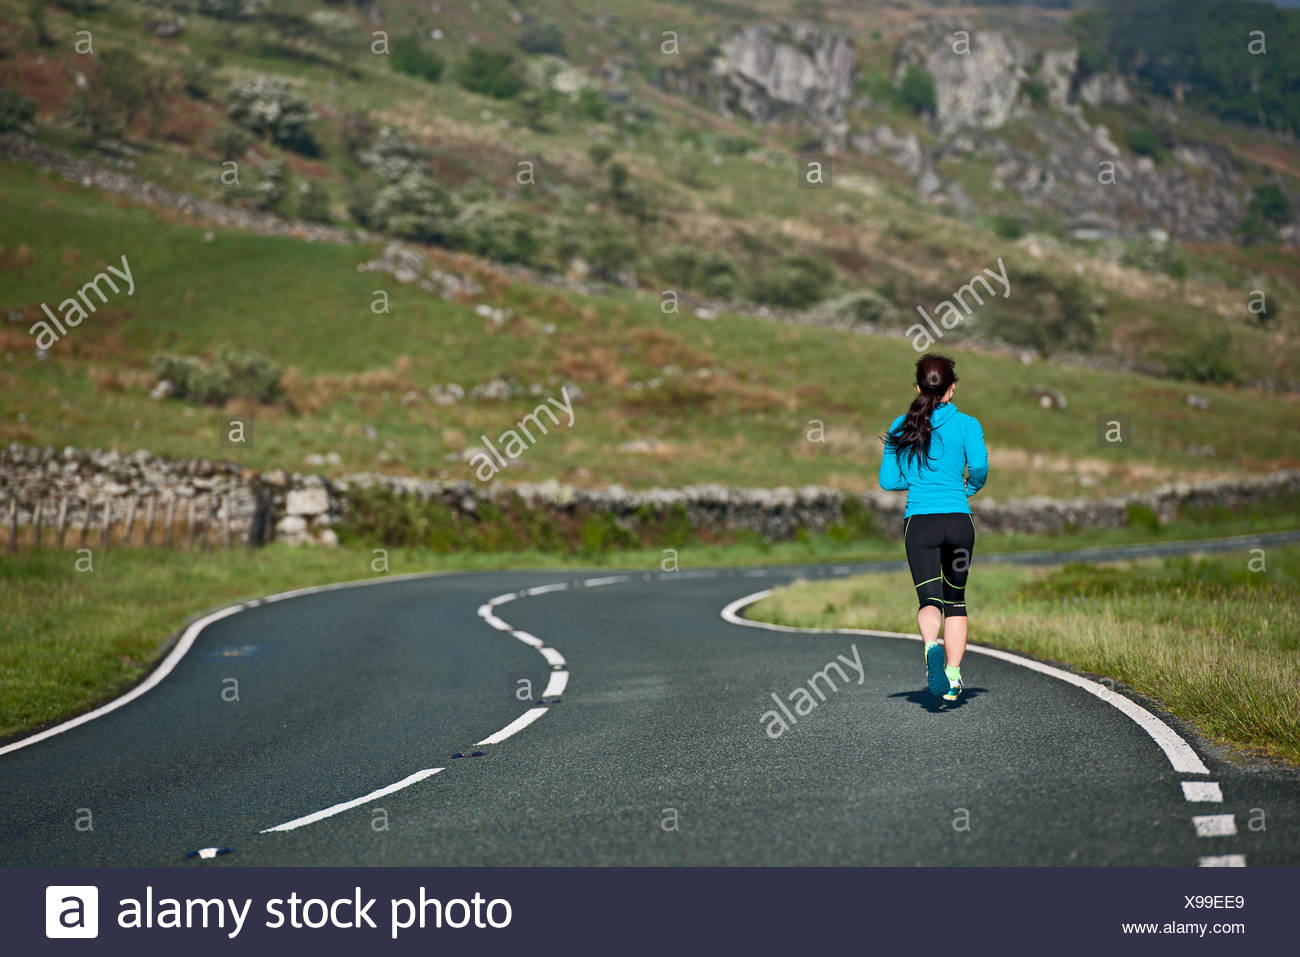 Rear view of female runner running on winding road, Capel Curig, Snowdonia, North Wales, UK - Stock Image